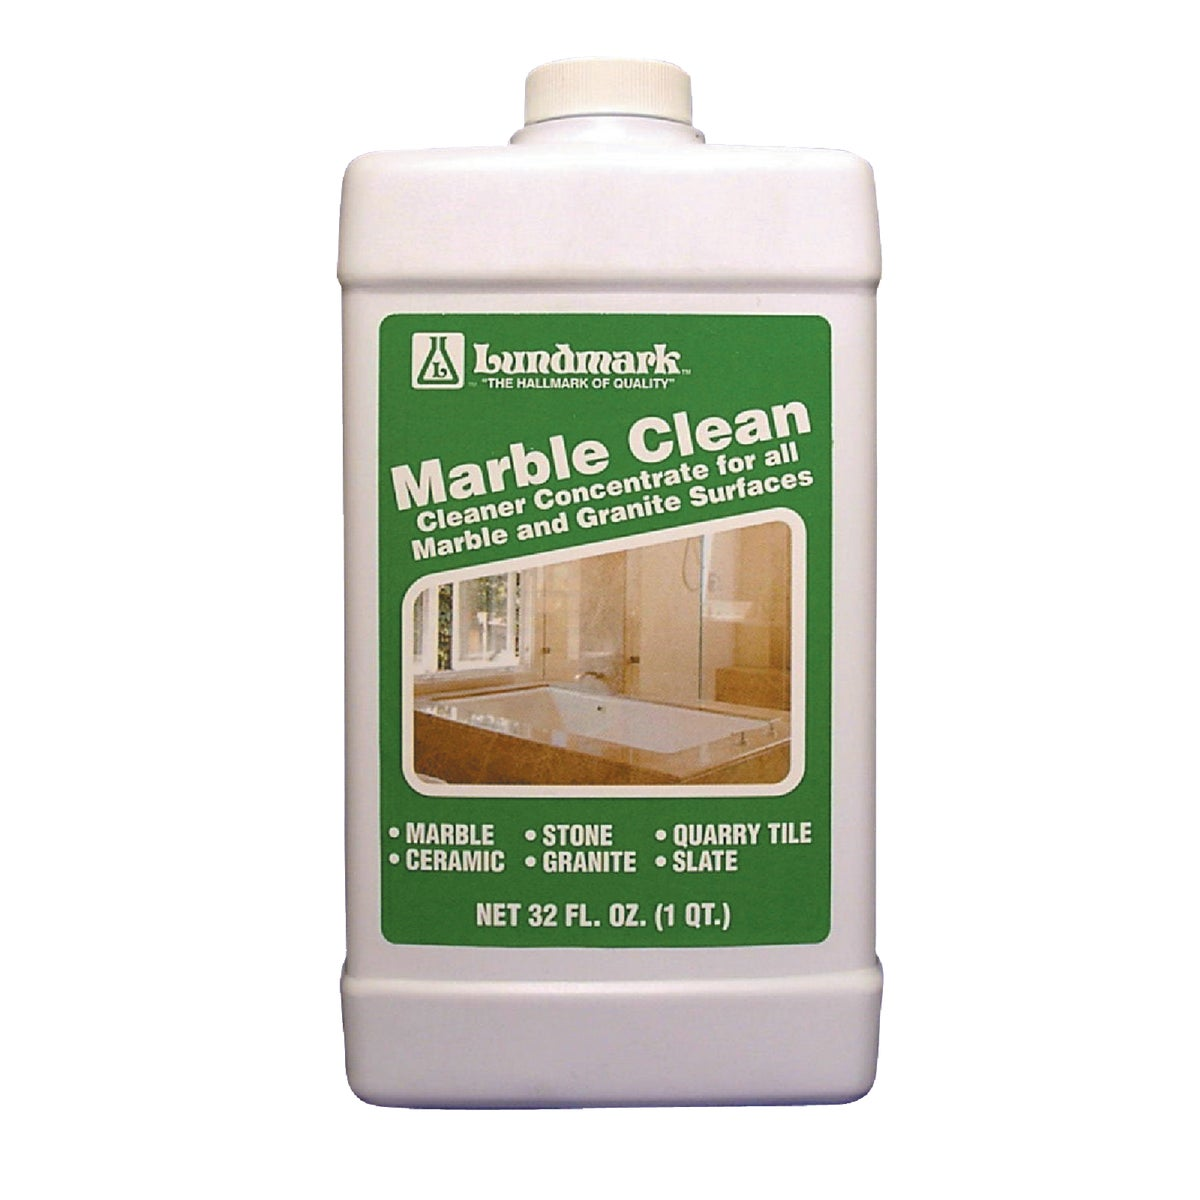 32OZ MARBLE CLEANER - 3535F32-6 by Lundmark Wax Co